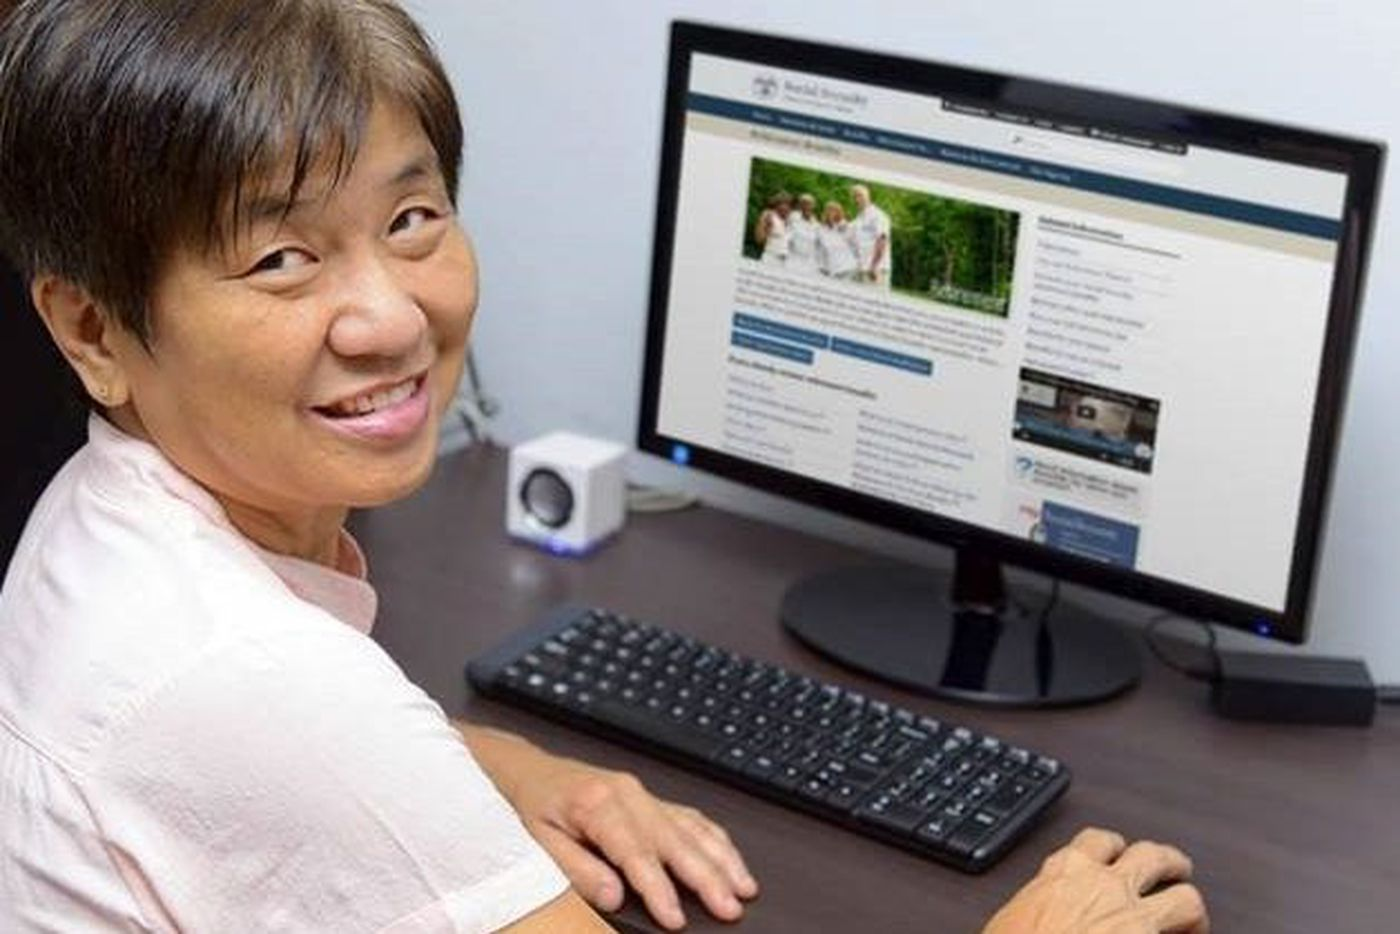 Retirement info for women: Our favorite classes, clubs and blogs